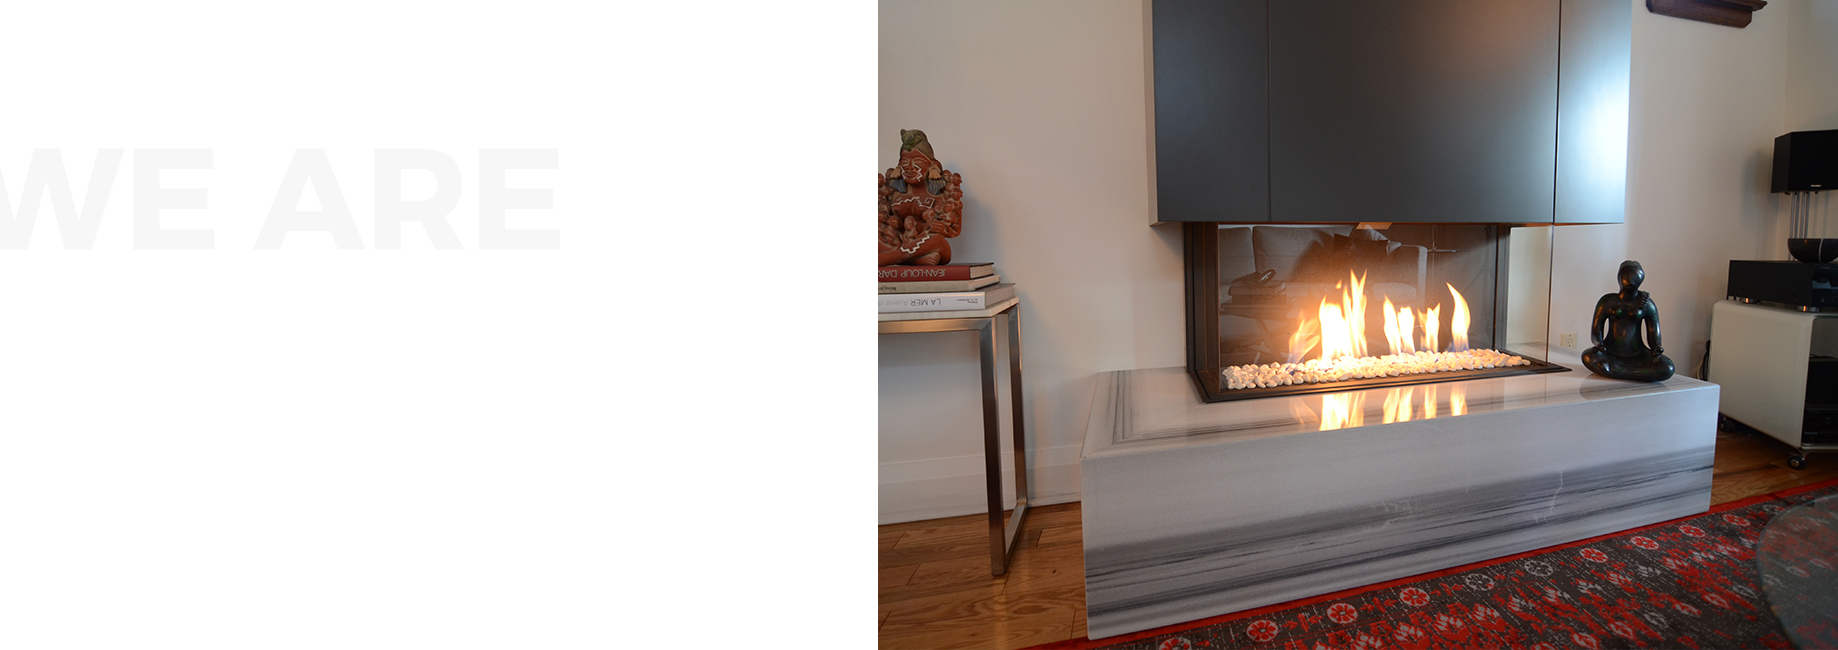 Toronto based indoor and outdoor custom fireplace design